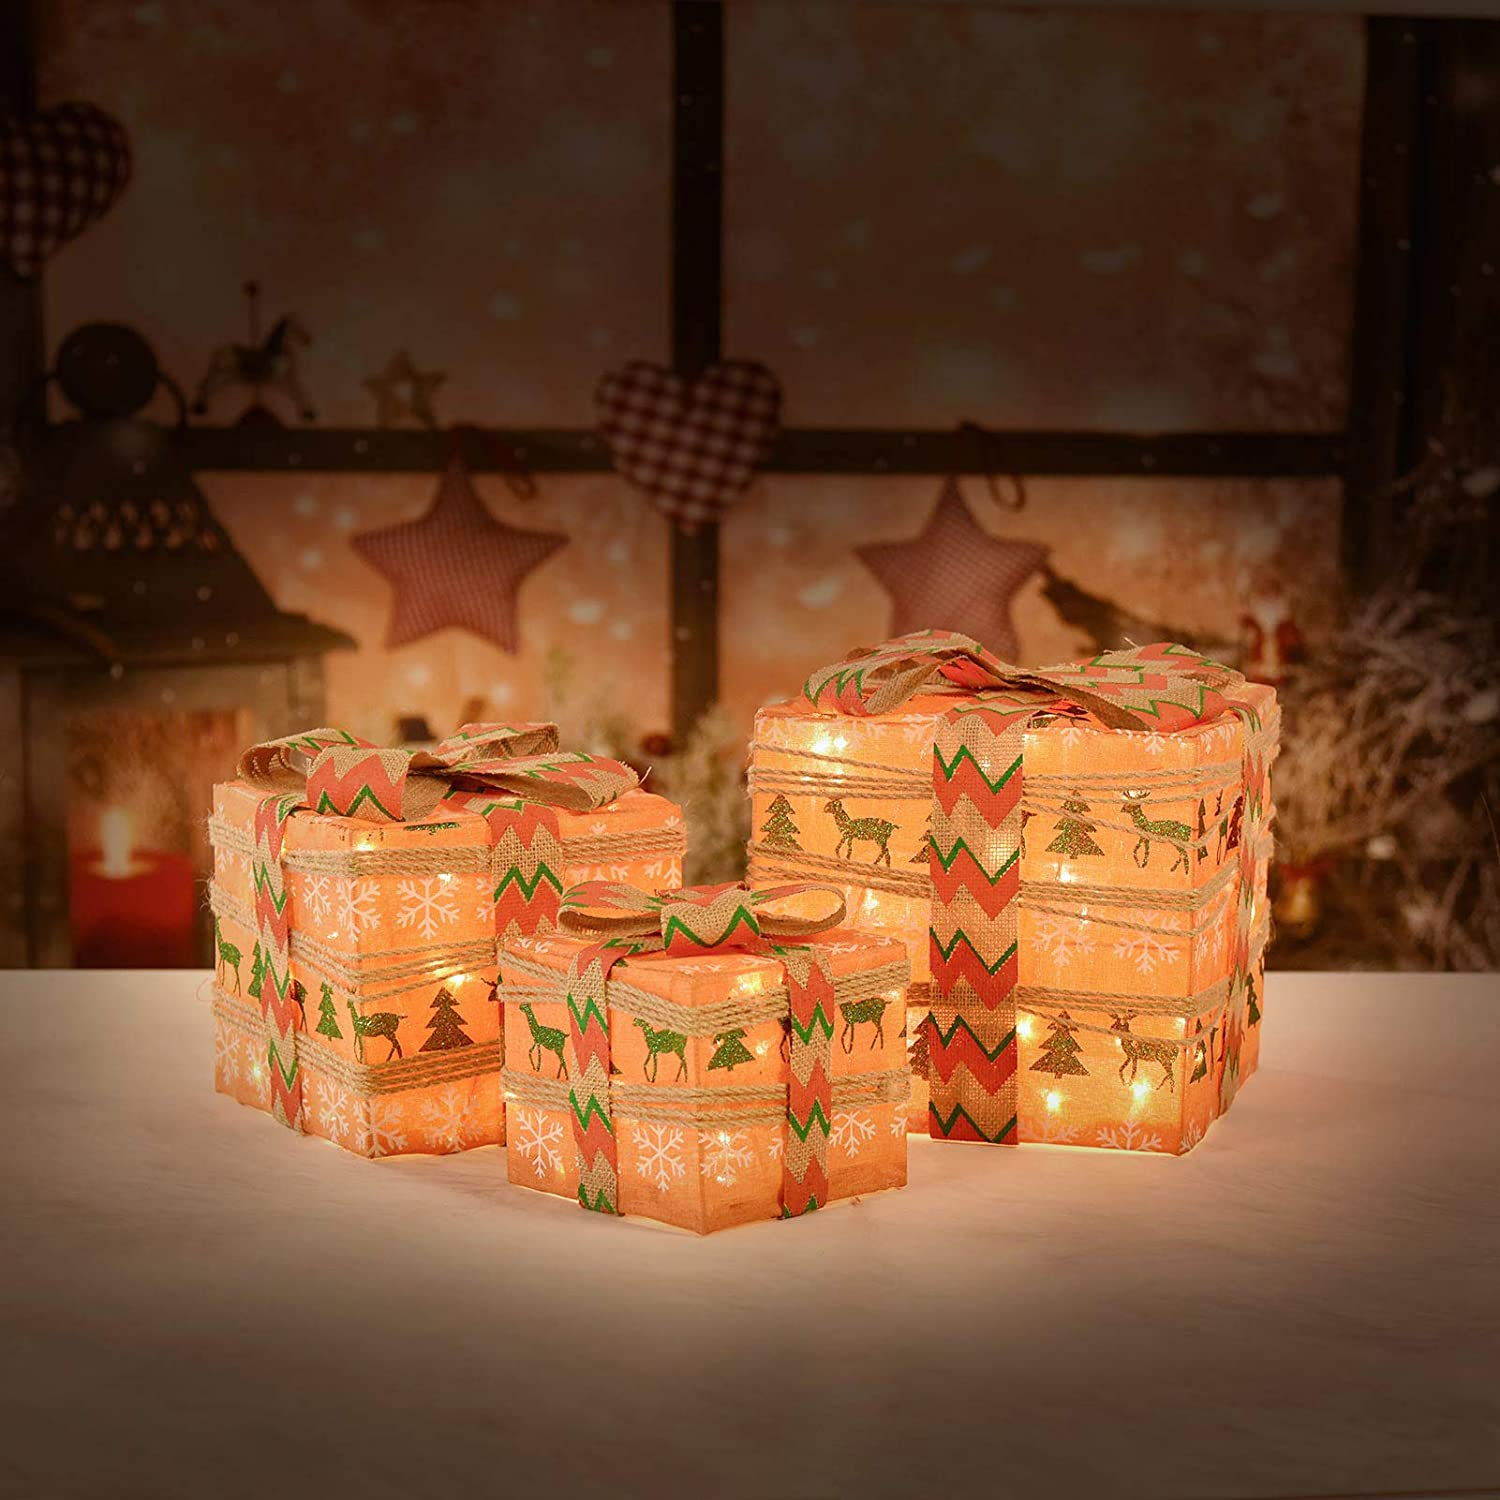 XUEYU Lighted Gift Boxes, Set of 3 Outdoor Christmas Decorations, Rustic 60 LED Light Up Presents Boxes, Plug-in Home Decor